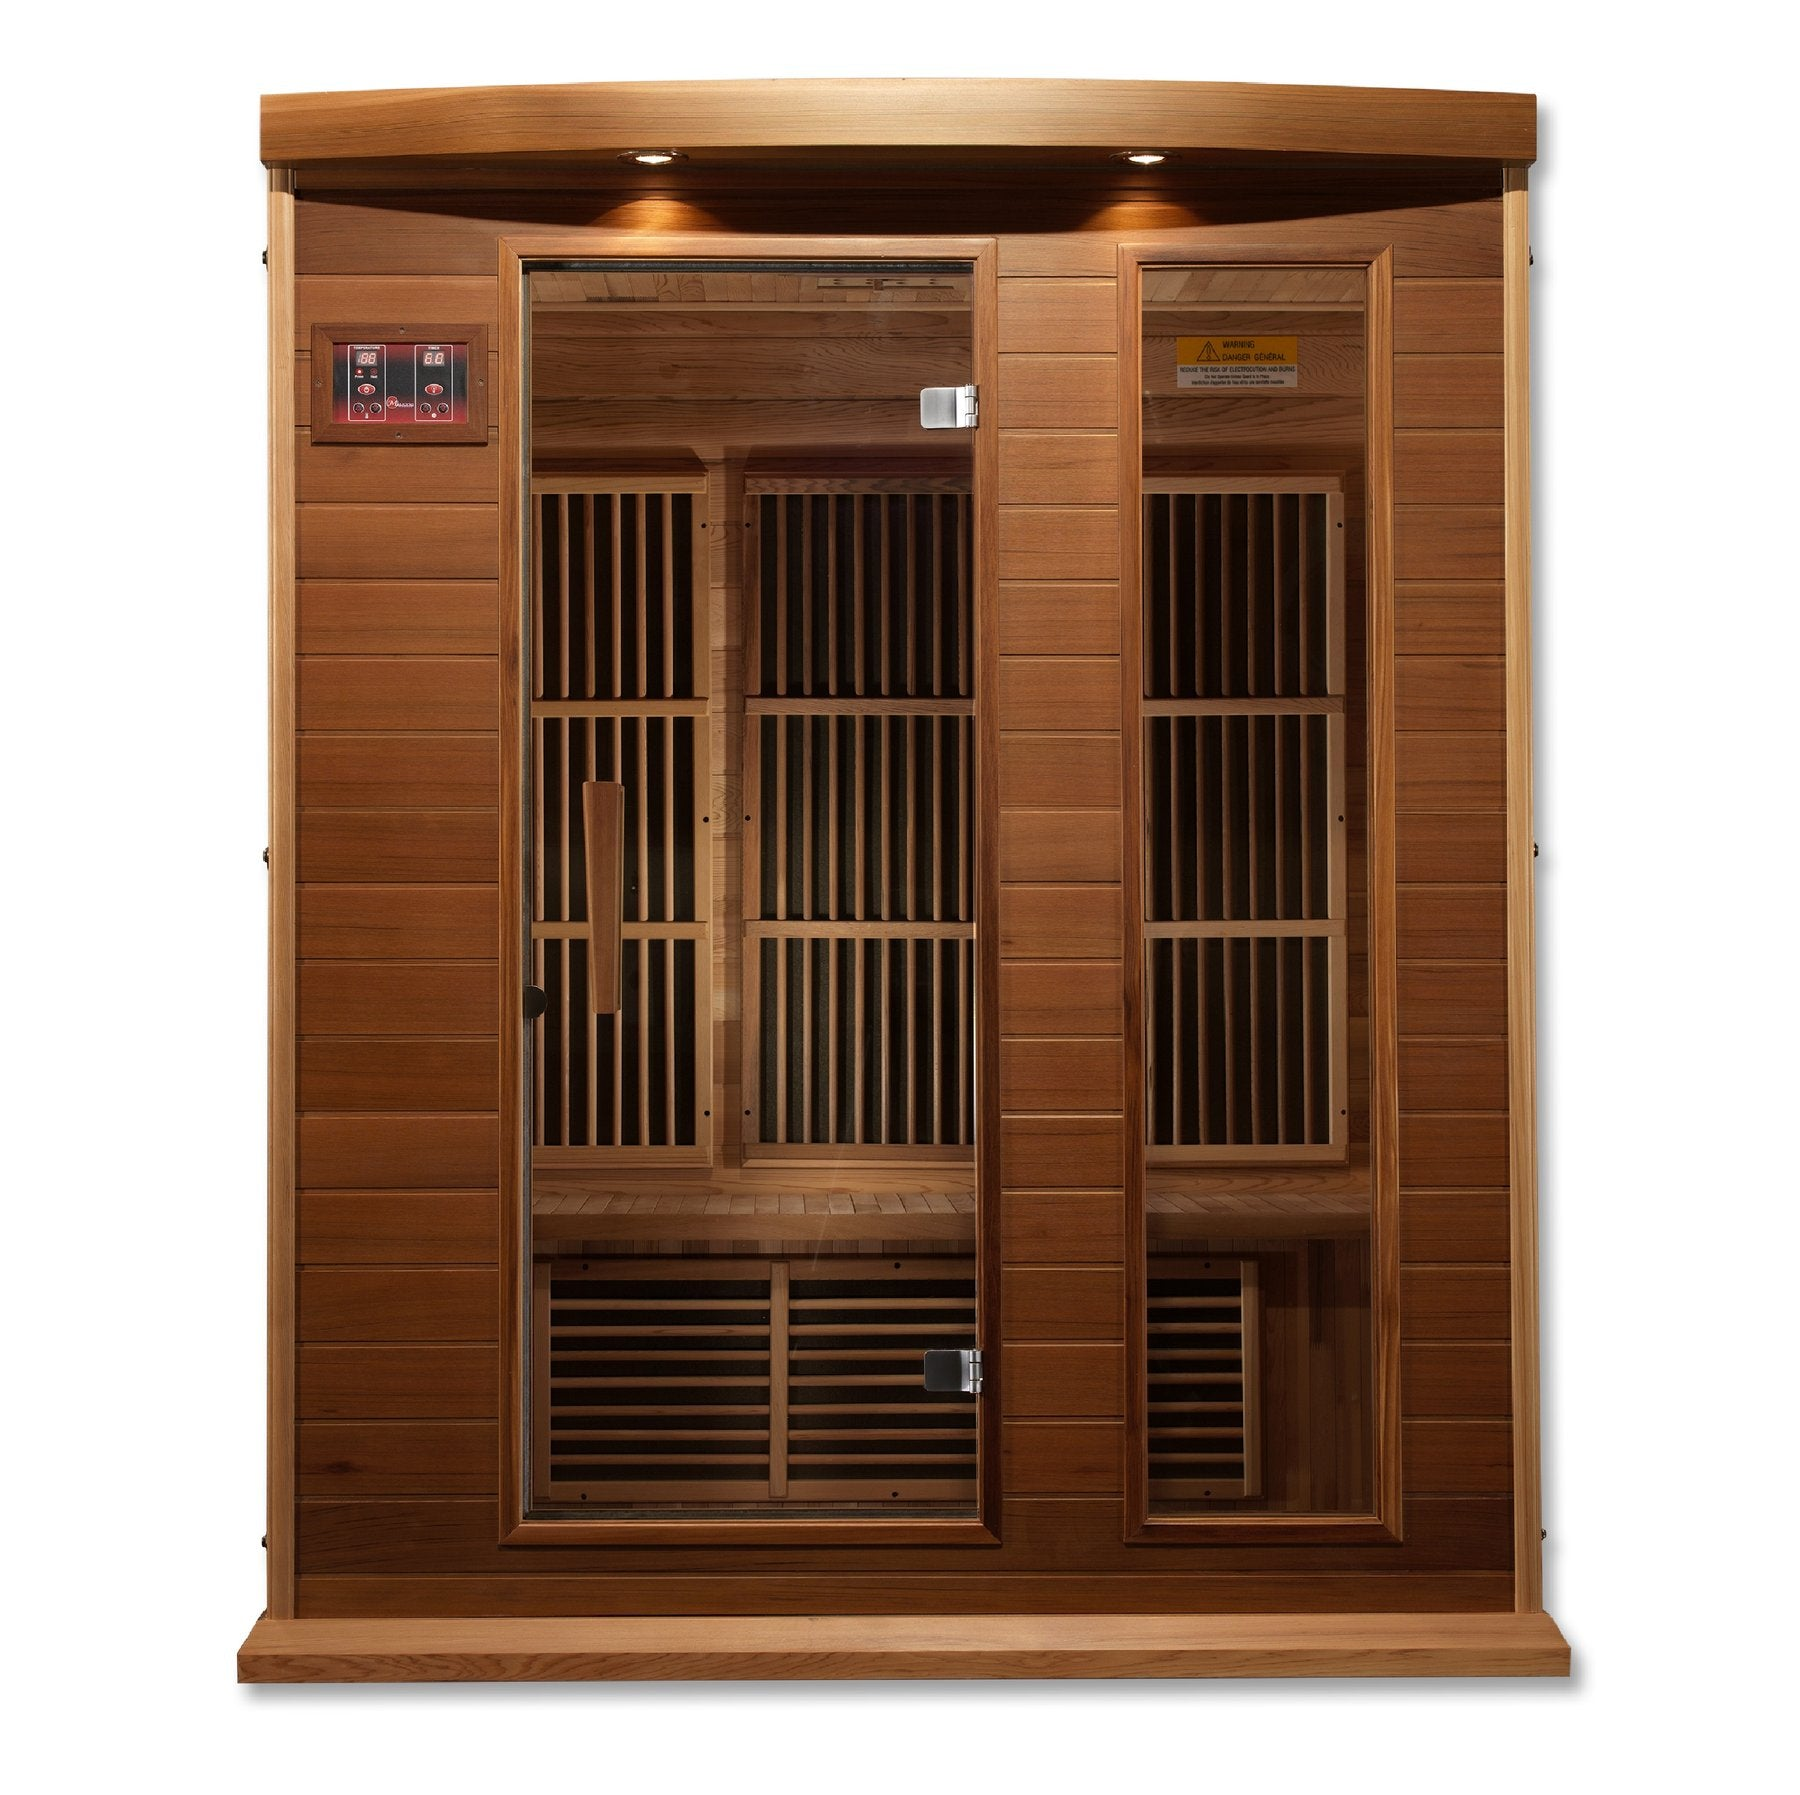 Maxxus Low EMF FAR Infrared Sauna Canadian Red Cedar MX-K306-01